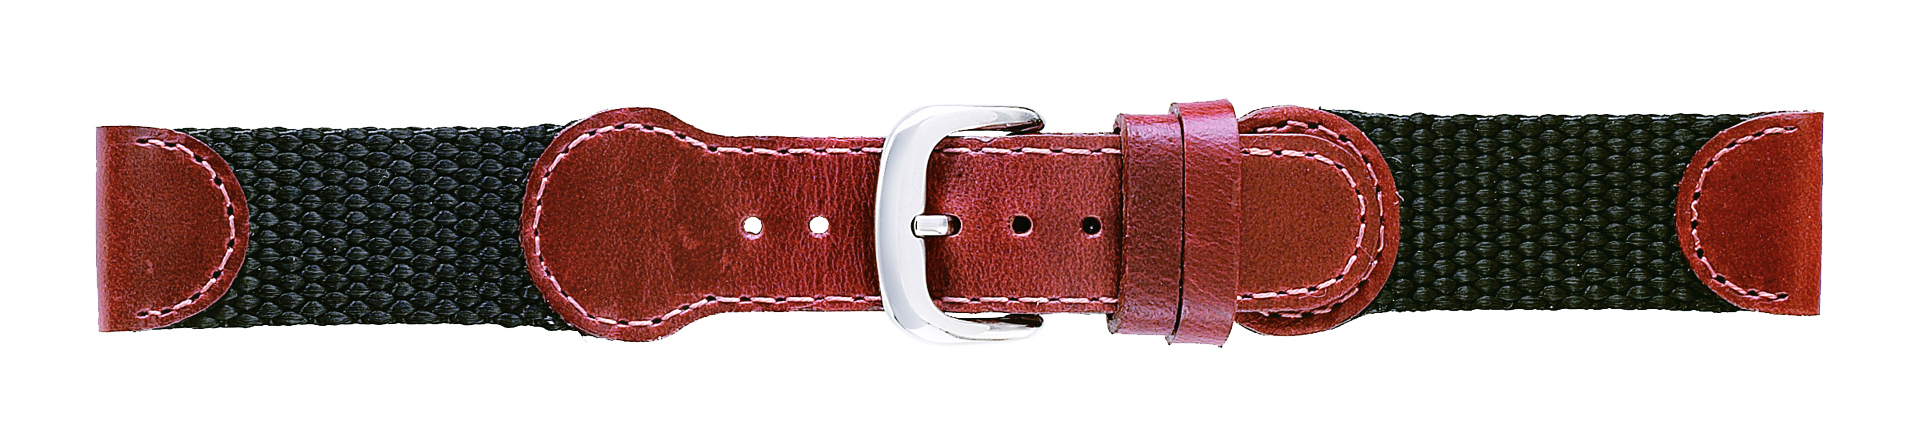 18mm Swiss Army Style Brown Leather & Nylon Strap-0